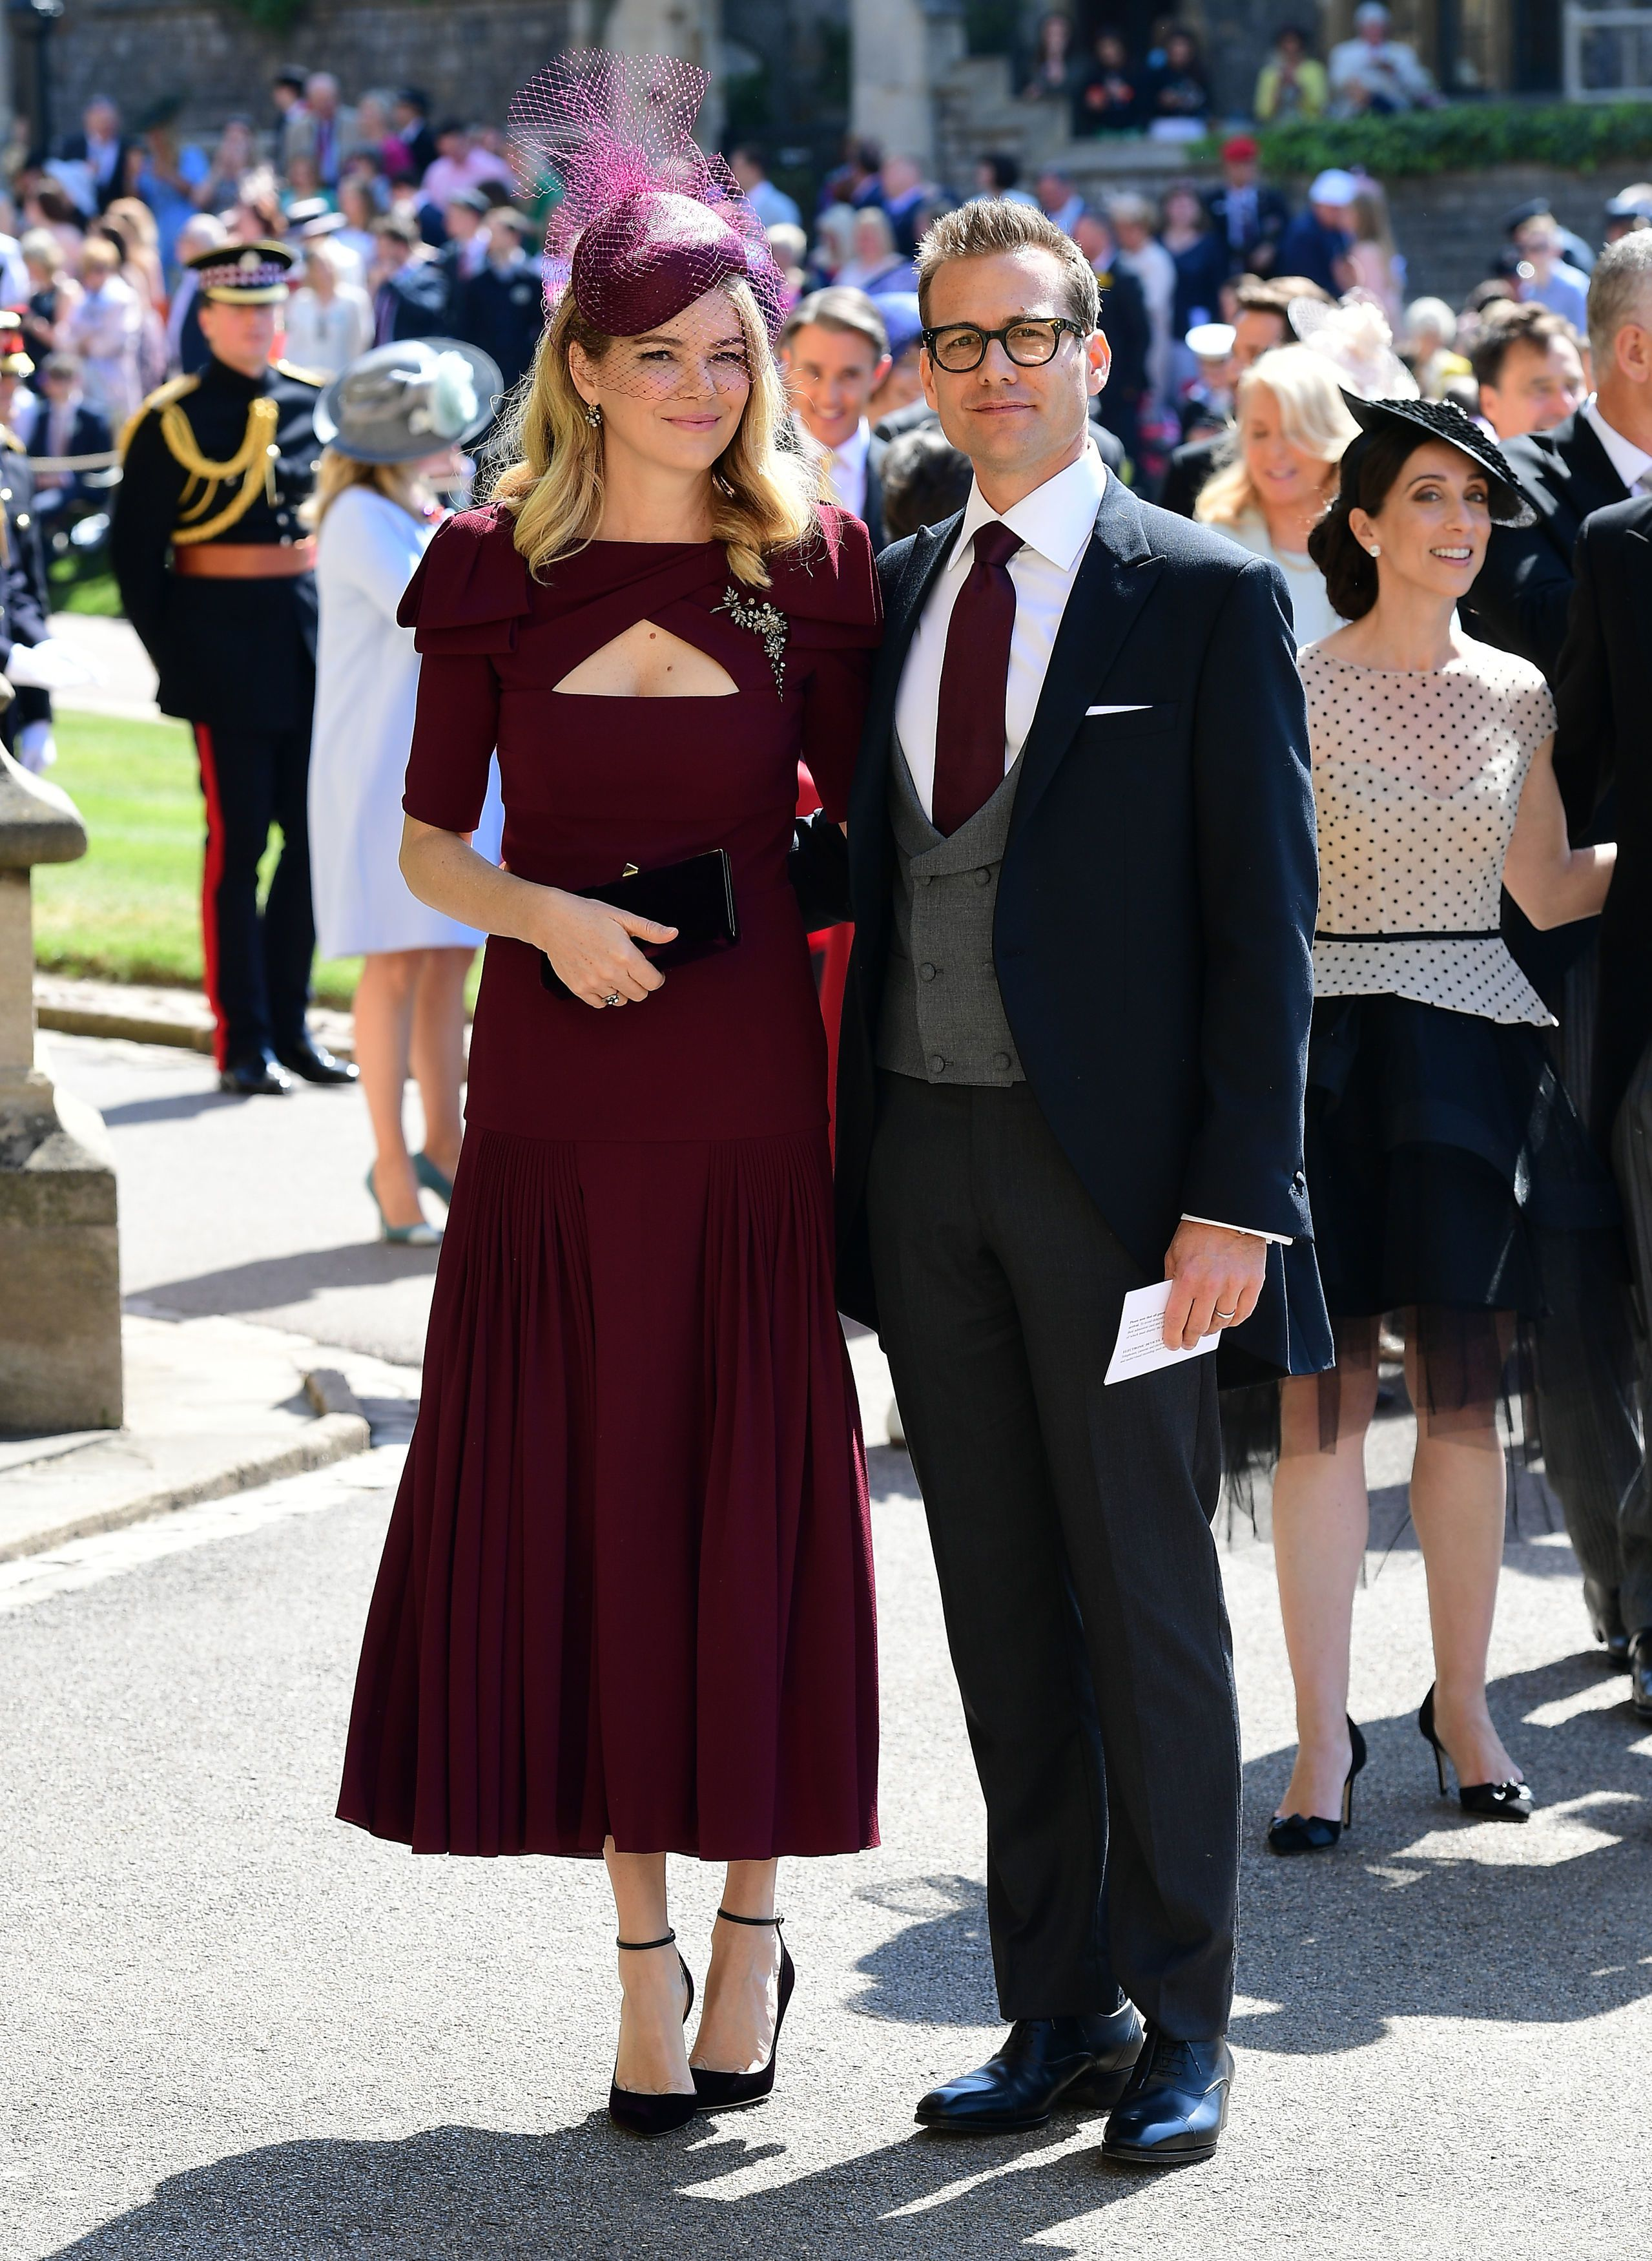 Royal Wedding Guests.Royal Wedding 2018 Celebrity Guest List Famous Guests At